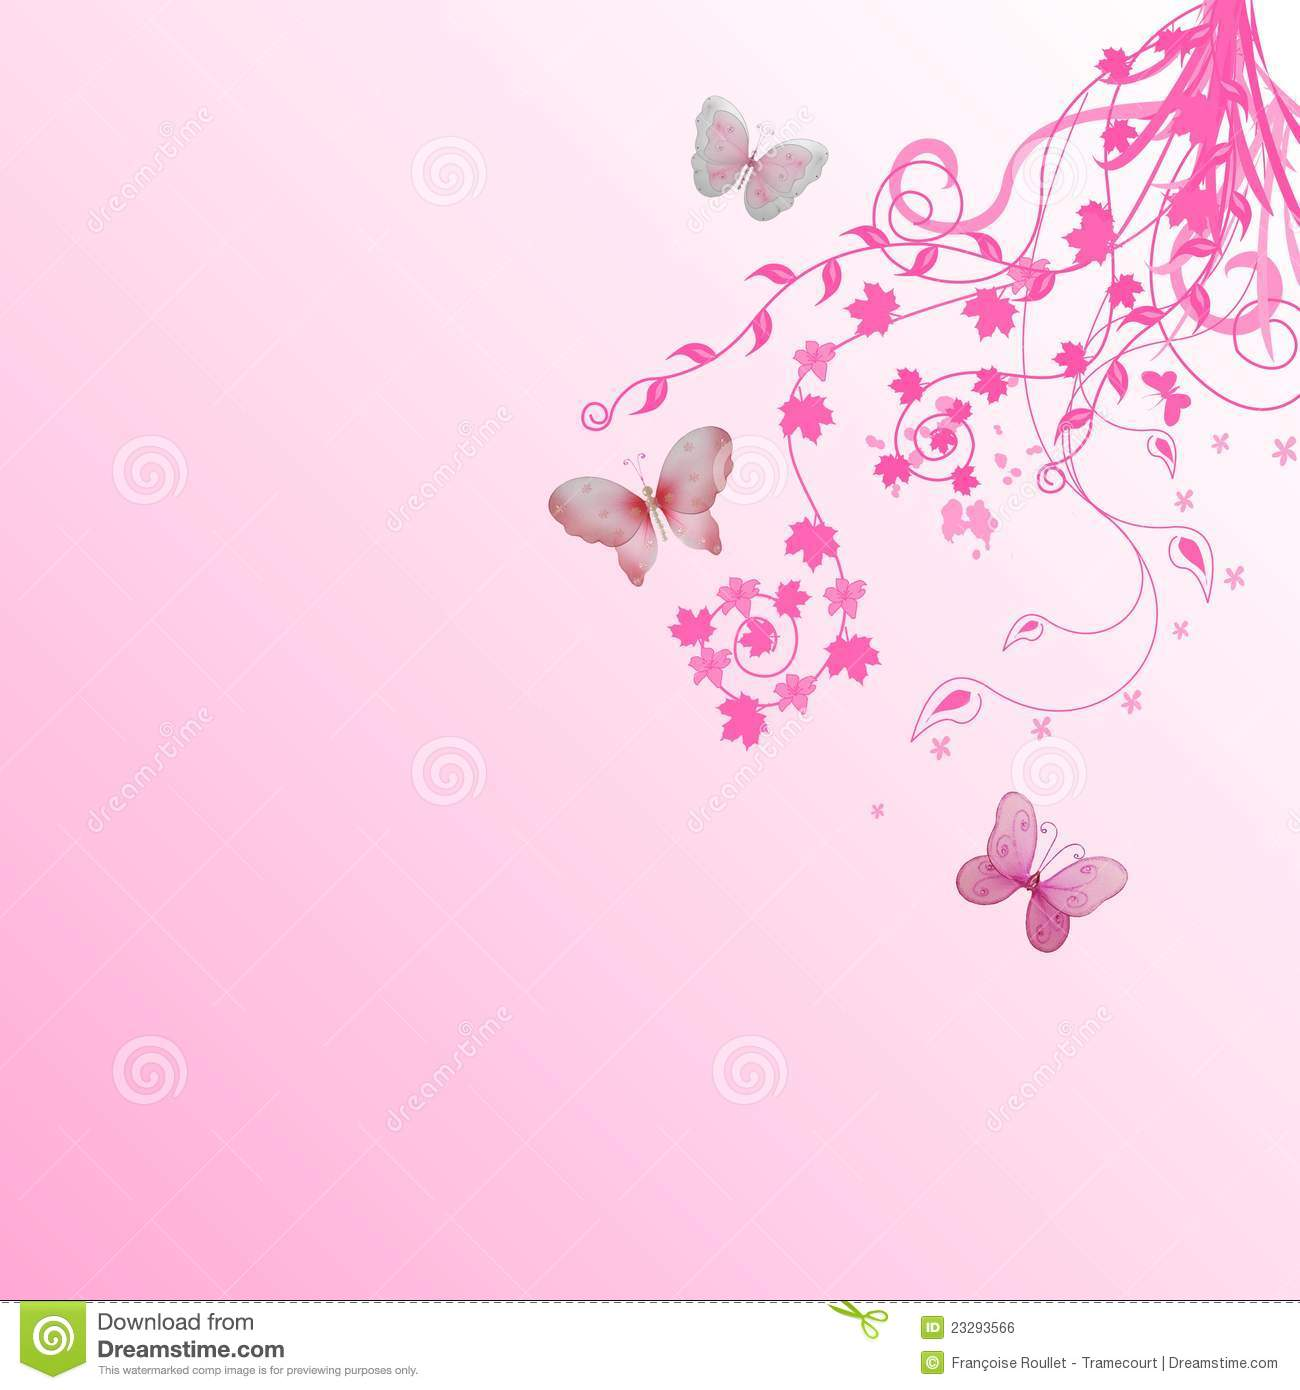 Garden Wall Murals Ideas Pink Floral Butterflies Background Royalty Free Stock